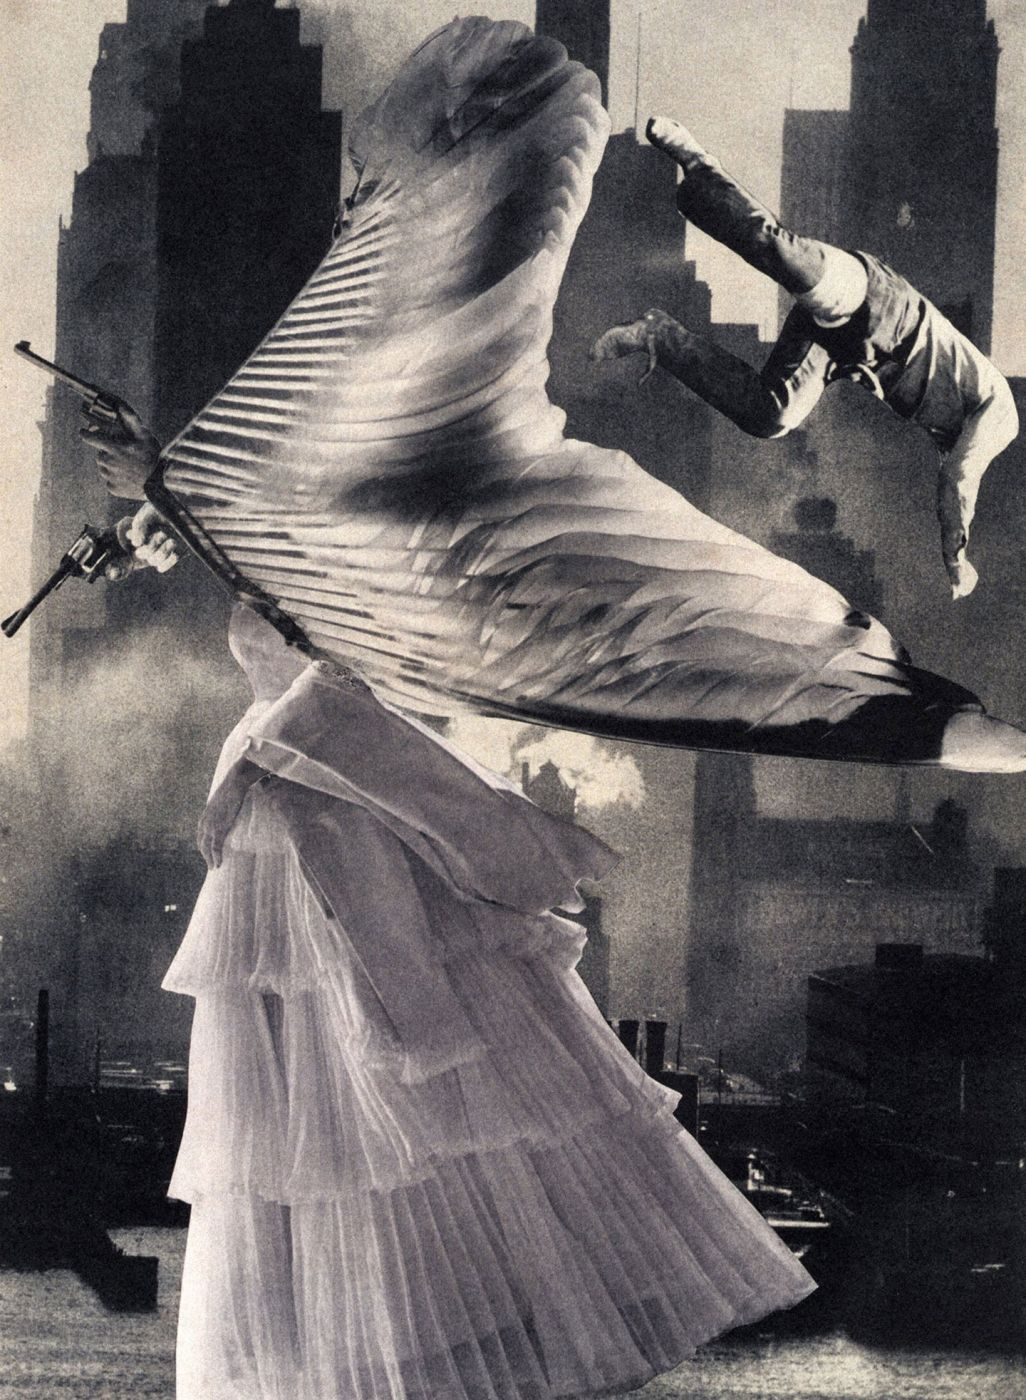 Toshiko Okanoue: The Miracle of Silence, Limited Edition [SIGNED]